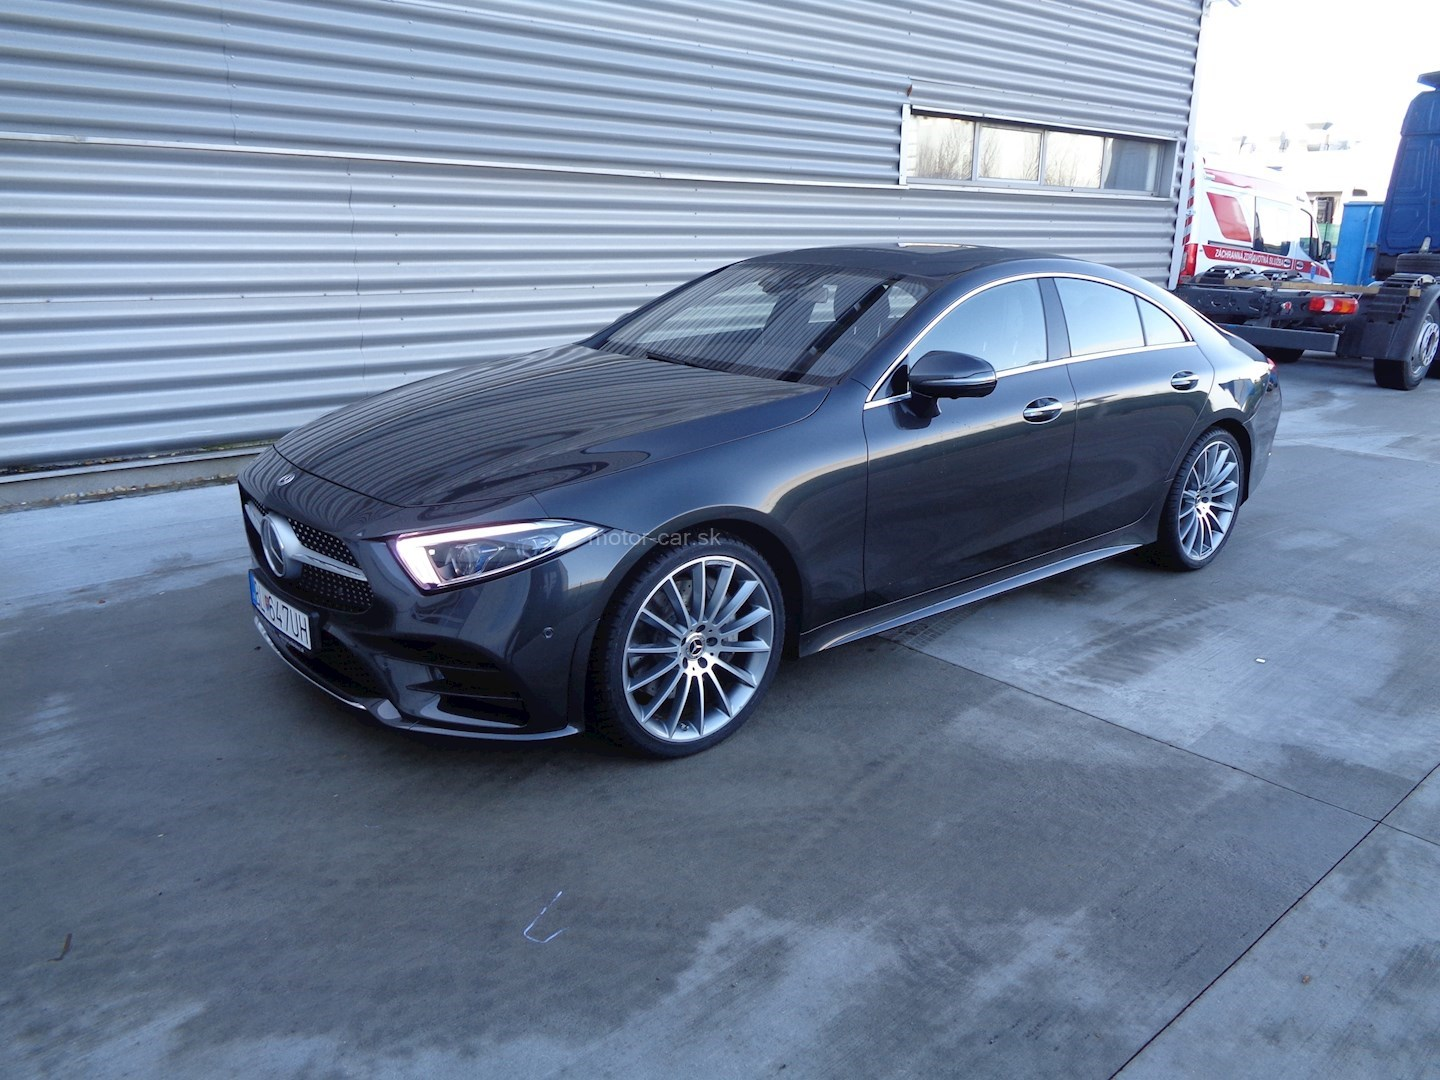 mercedes-benz cls 450 4matic